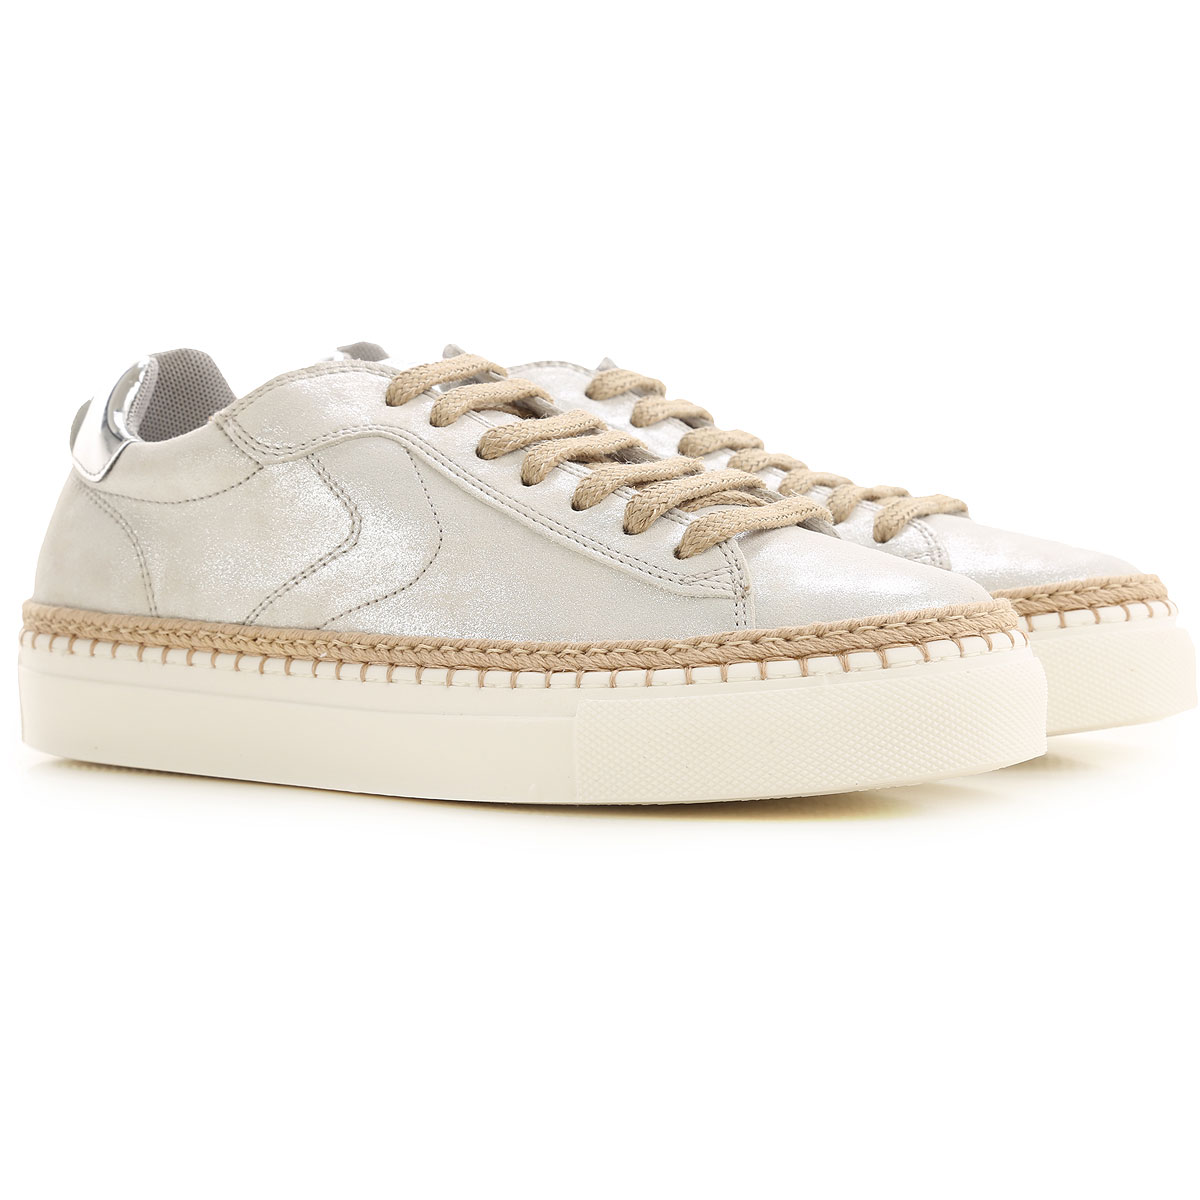 Voile Blanche Sneakers for Women On Sale in Outlet, Silver, Leather, 2019, 7 8 9